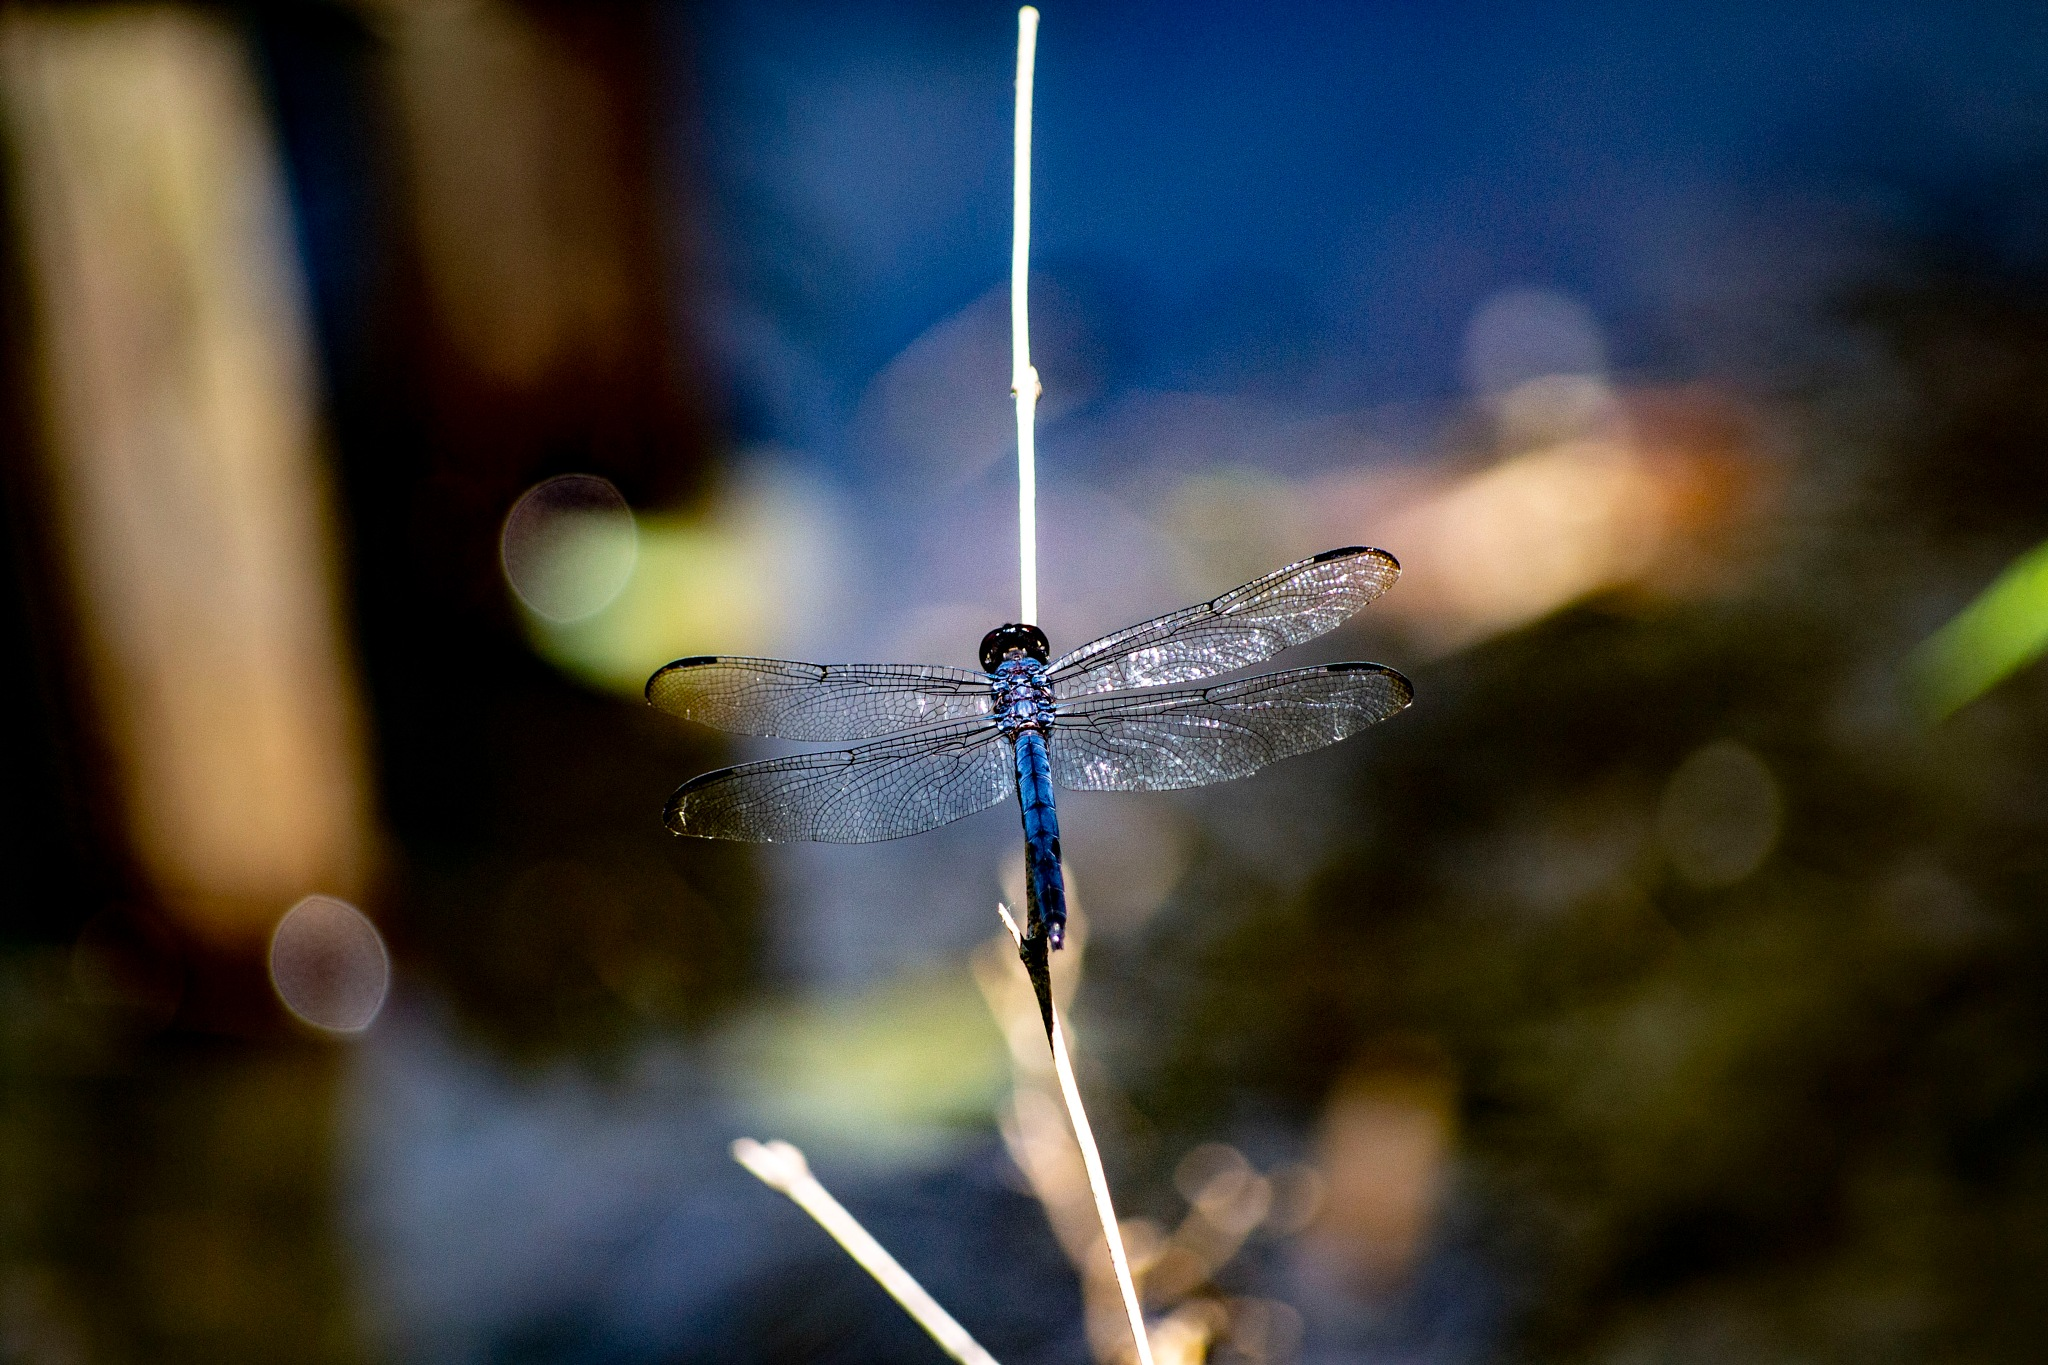 Blue Dragonfly by Carrie Cooper